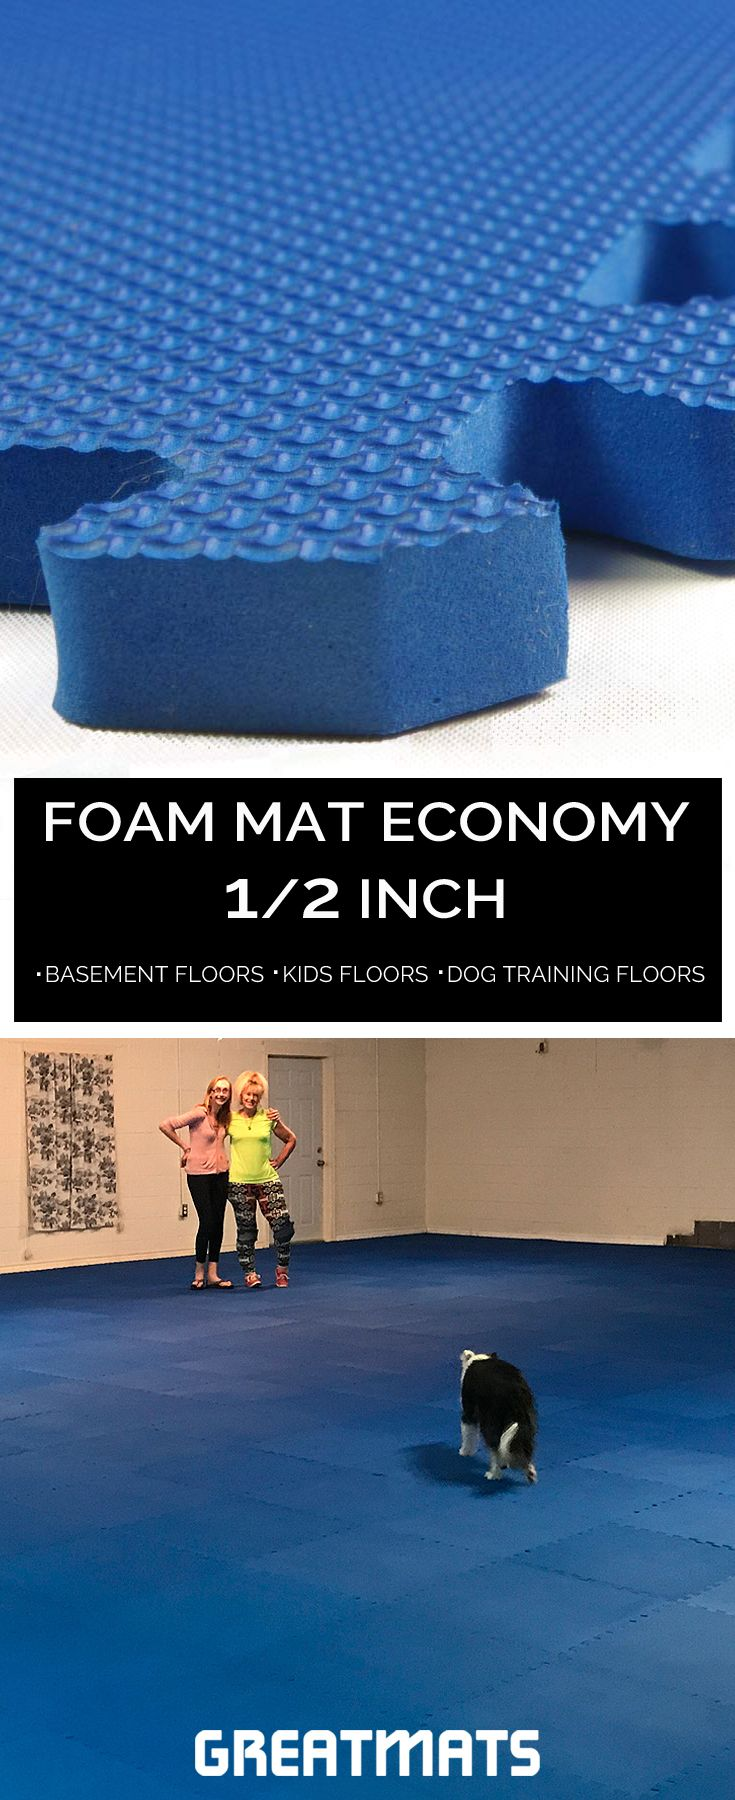 Interlocking Foam Mat For Kids And Home Gym Foam Mats Basement Flooring Foam Mat Flooring